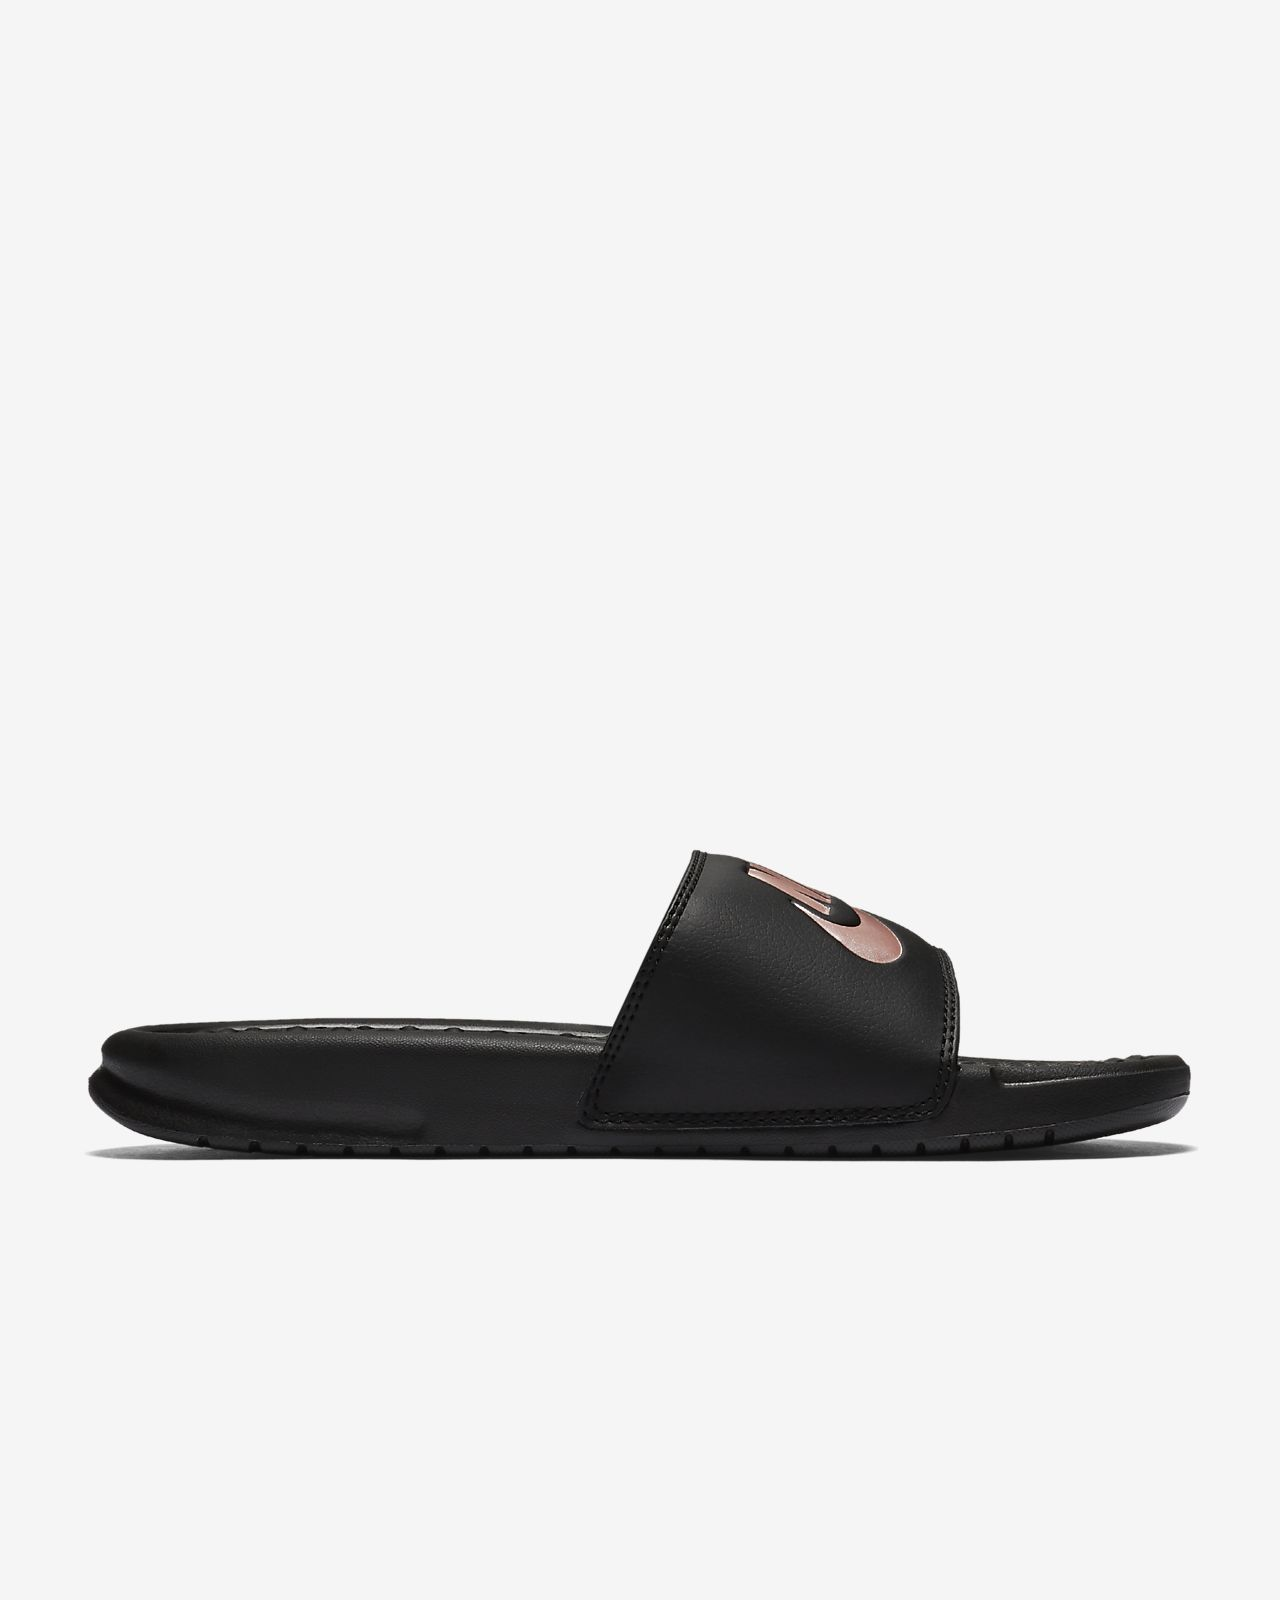 huge discount 636d0 c5458 Low Resolution Nike Benassi Women s Slide Nike Benassi Women s Slide